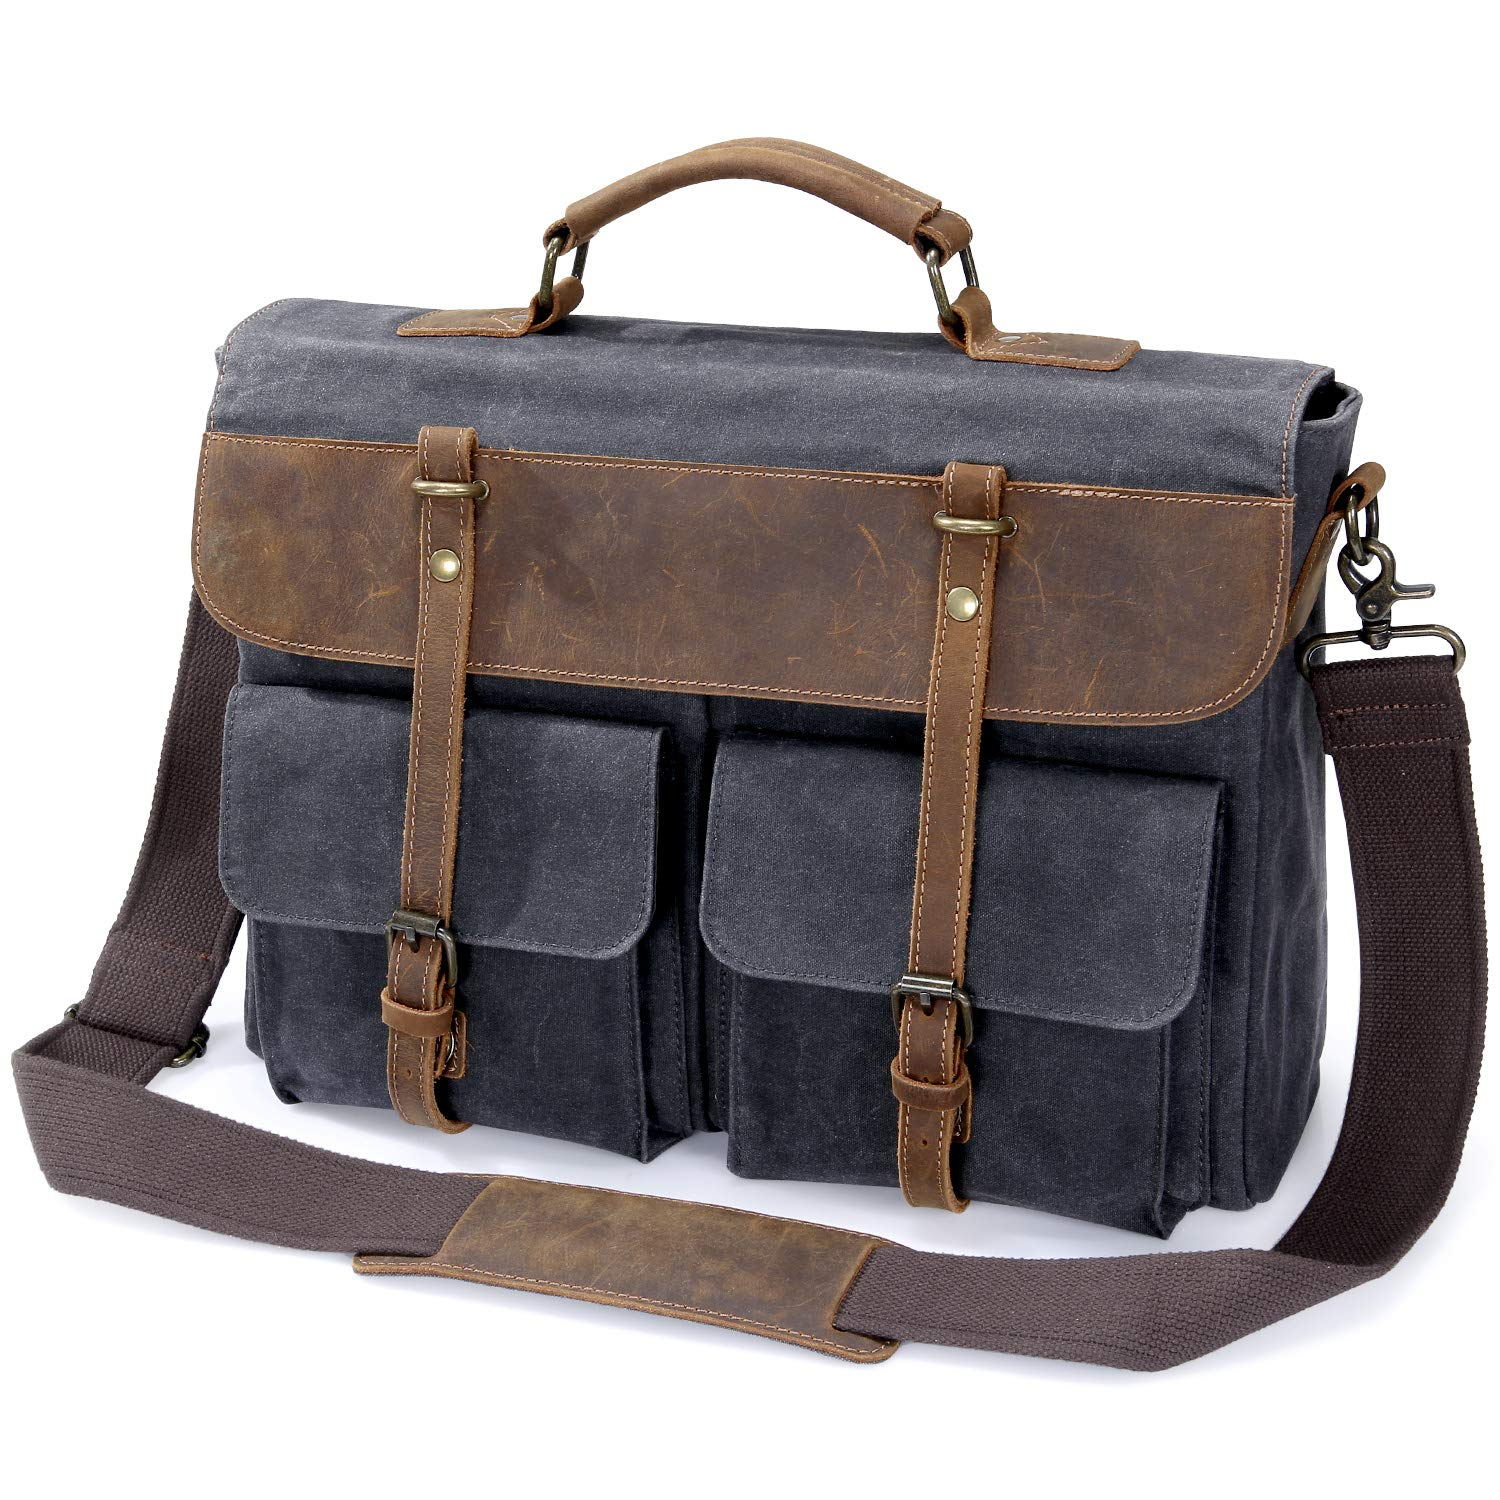 Lifewit 15.6 Inch Water-Proof Leather Satchel Laptop Messenger Bag Vintage  Waxed Canvas Cross- 685b4becee8d5